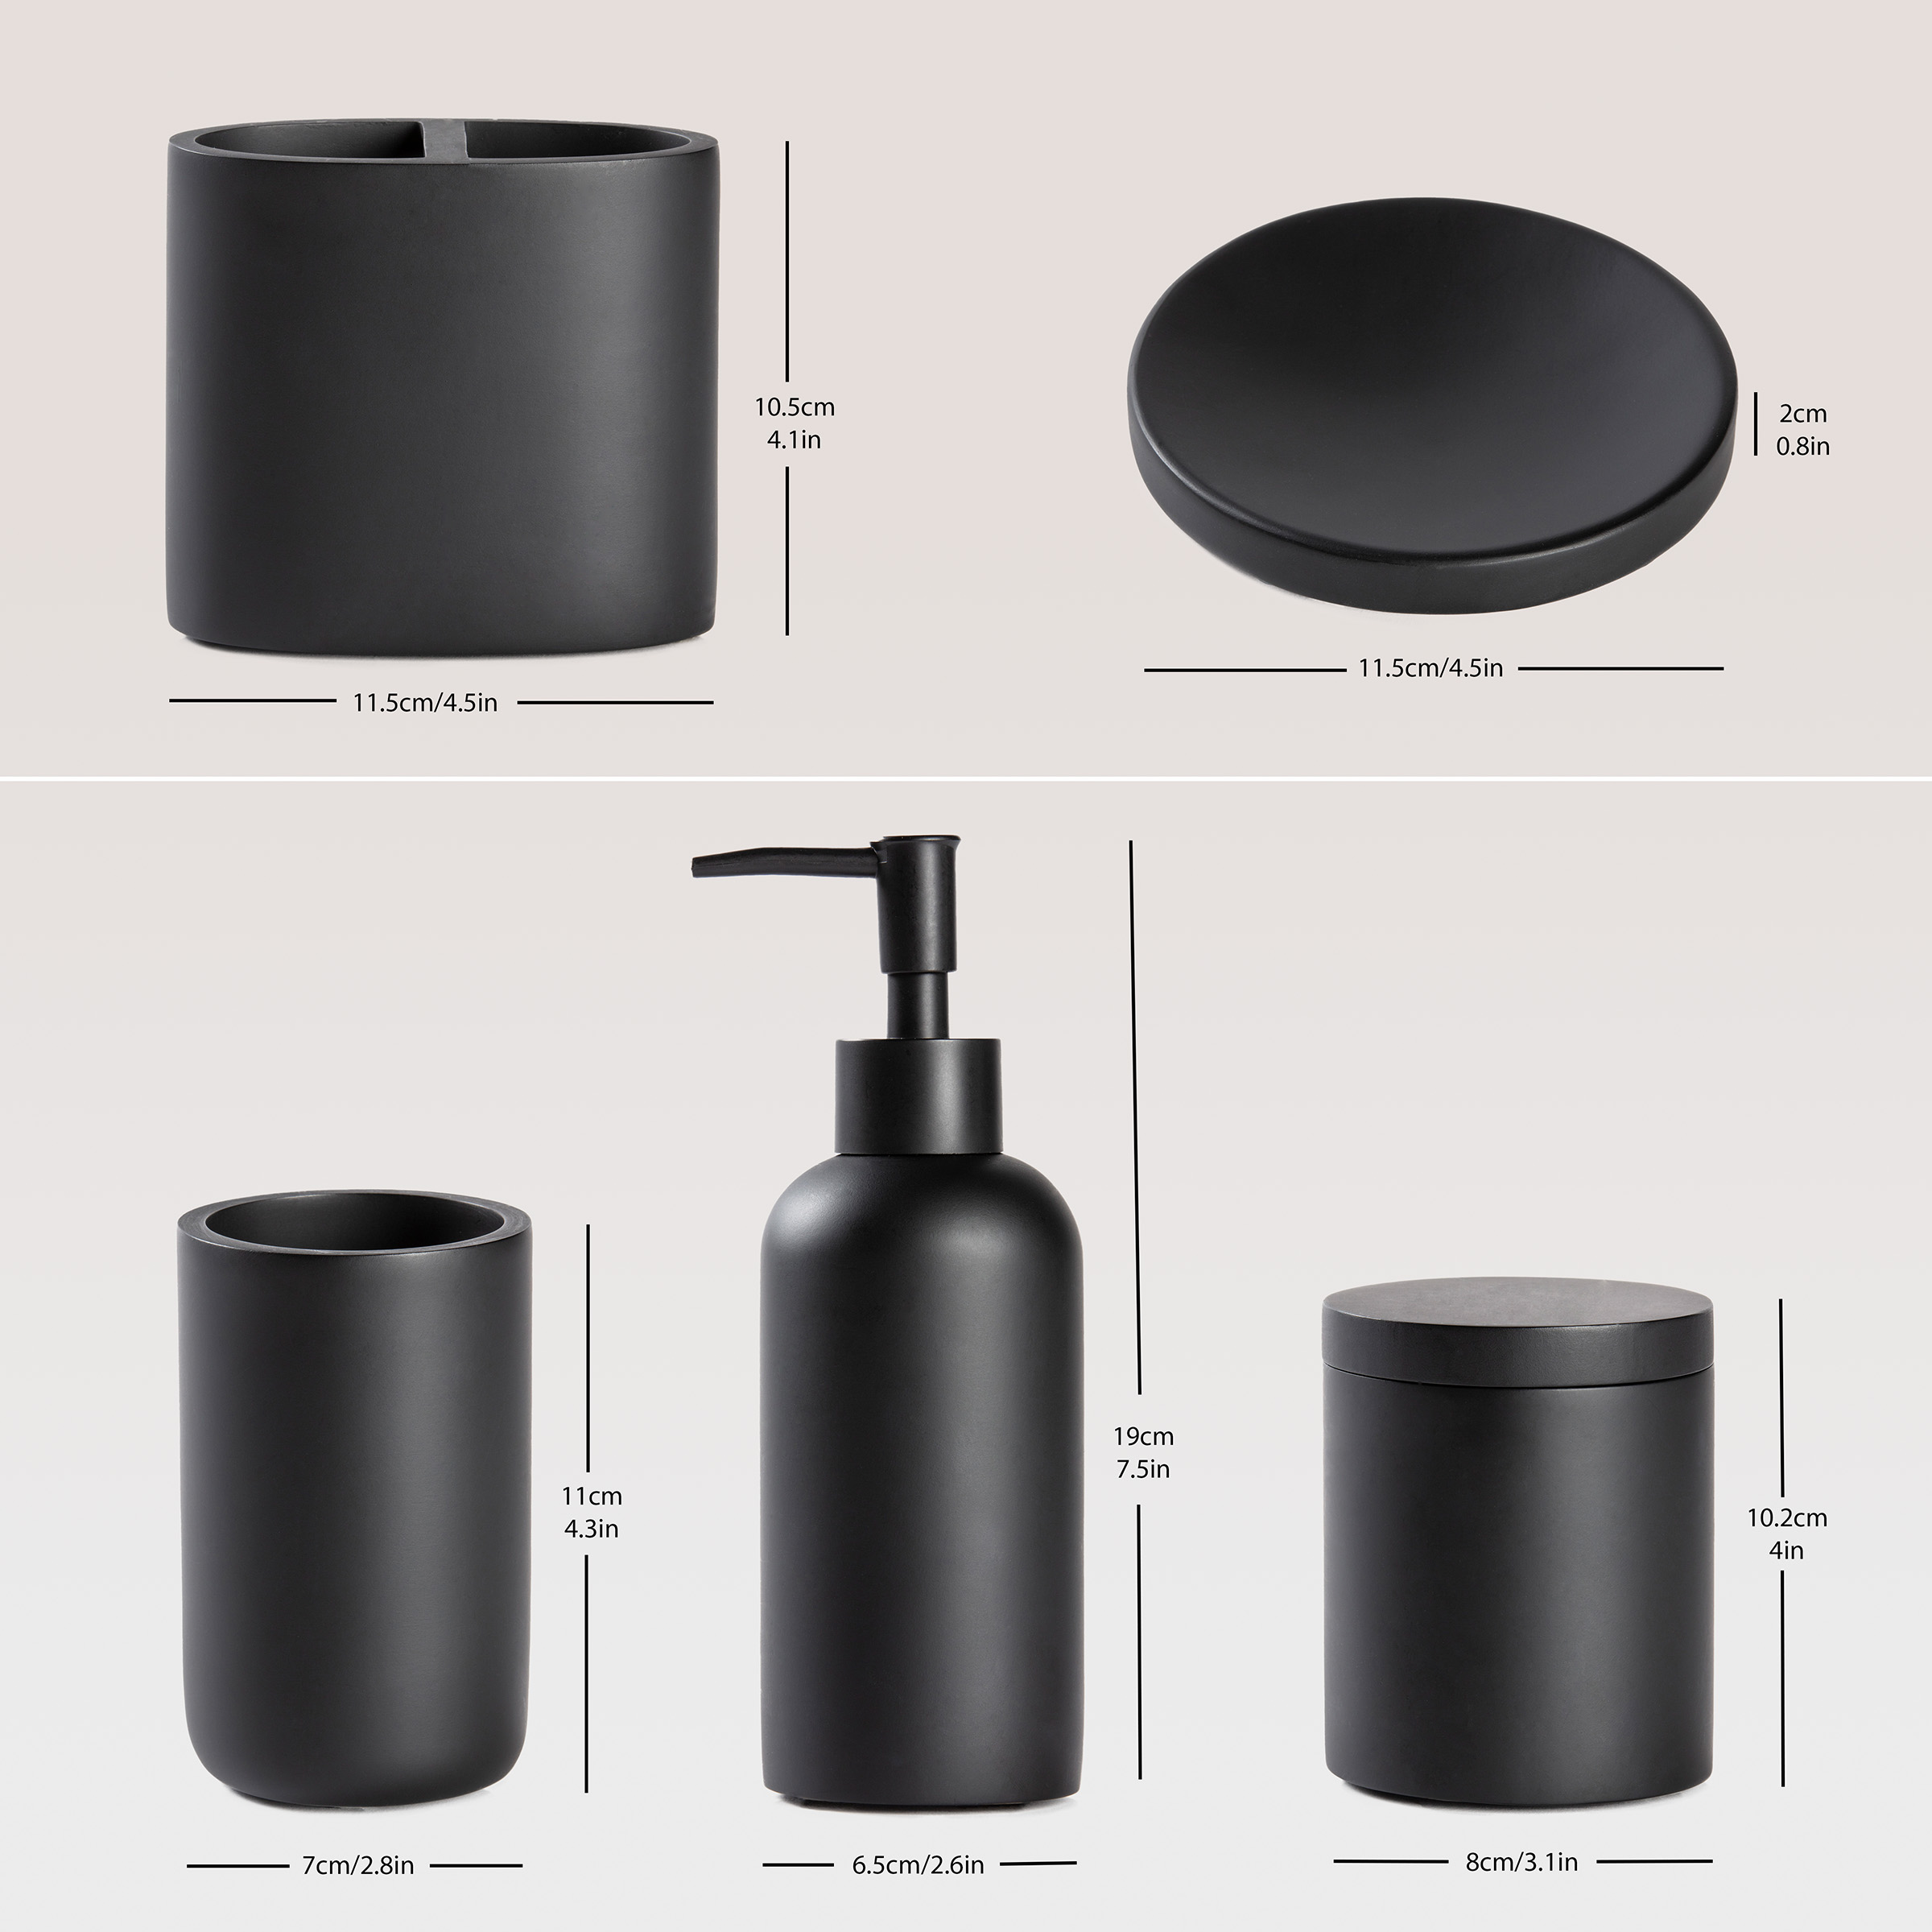 Studio product photography for Info Graphic of bathroom accessories